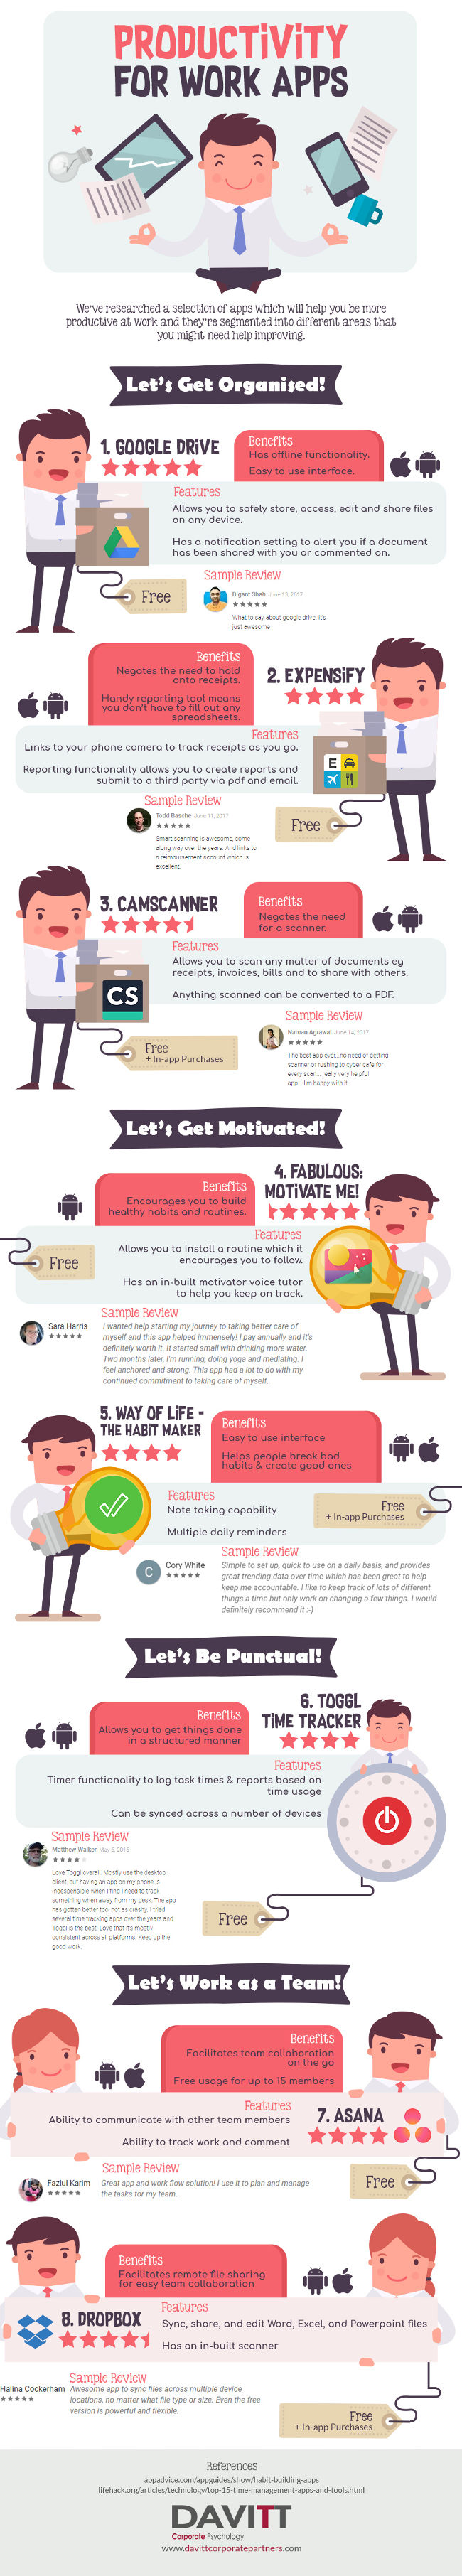 How to Be Productive at Work [Infographic]